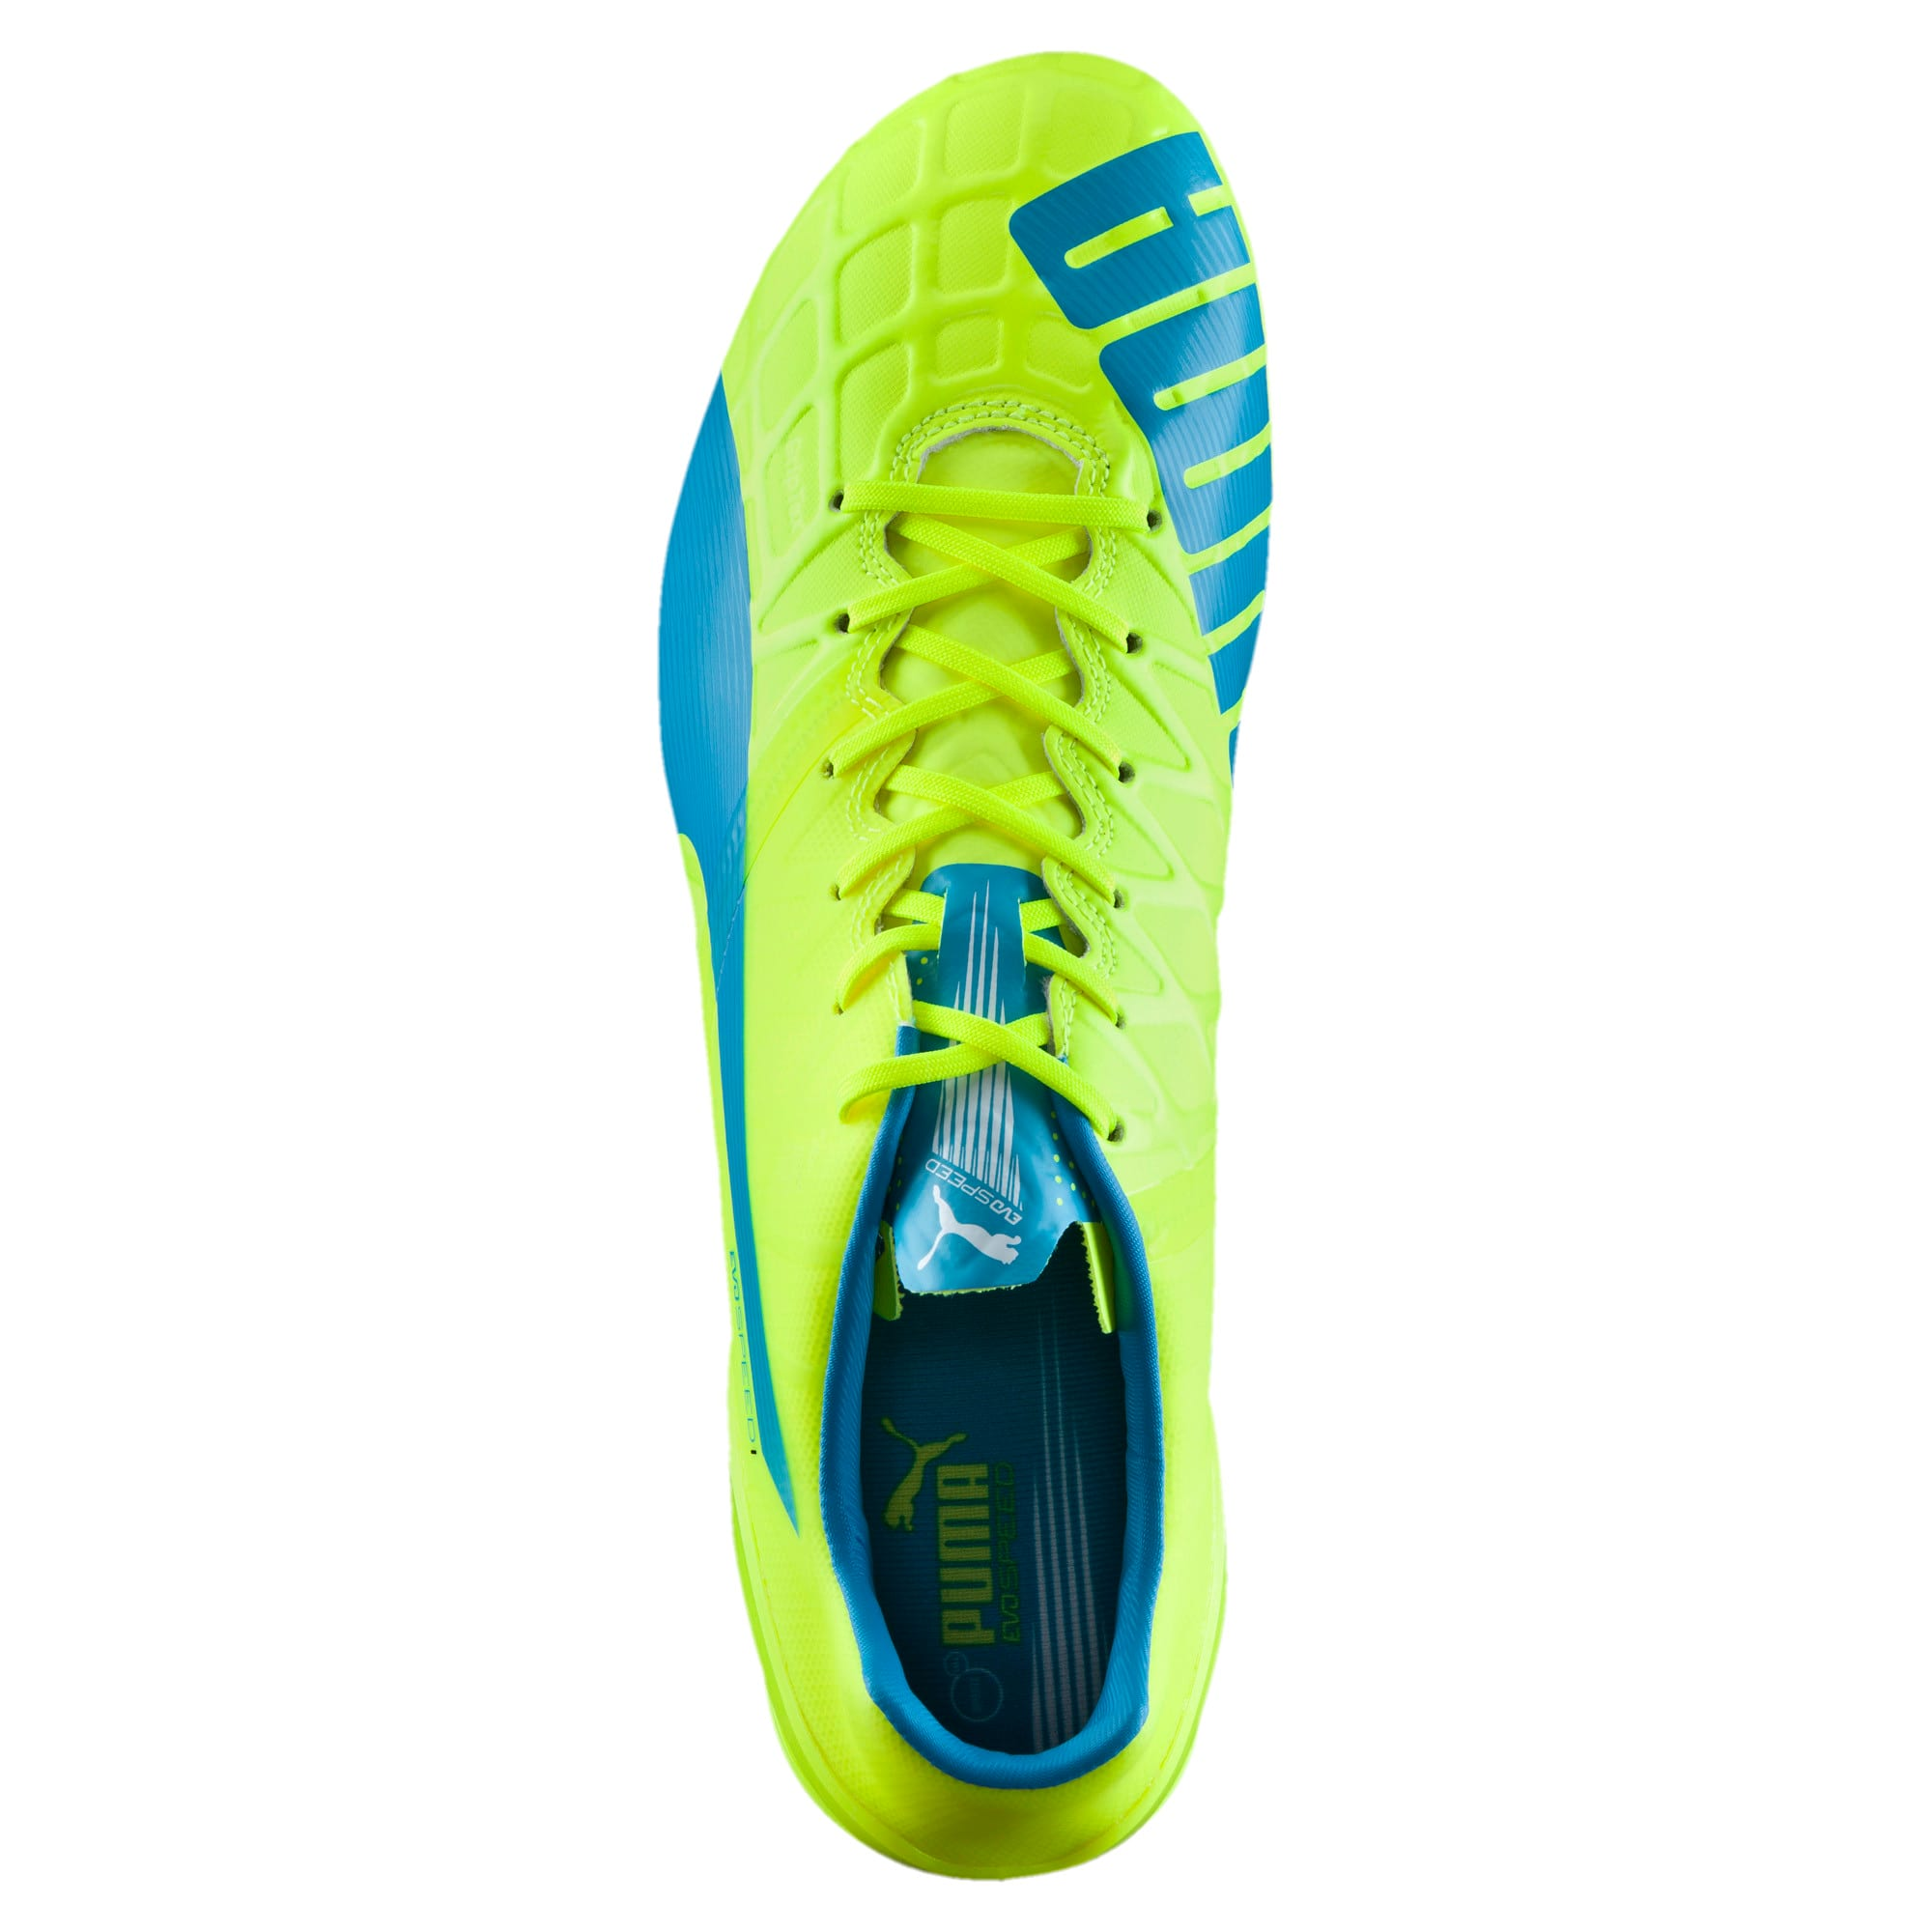 Thumbnail 5 of evoSPEED 1.4 FG Football Boots, yellow-blue-white, medium-IND